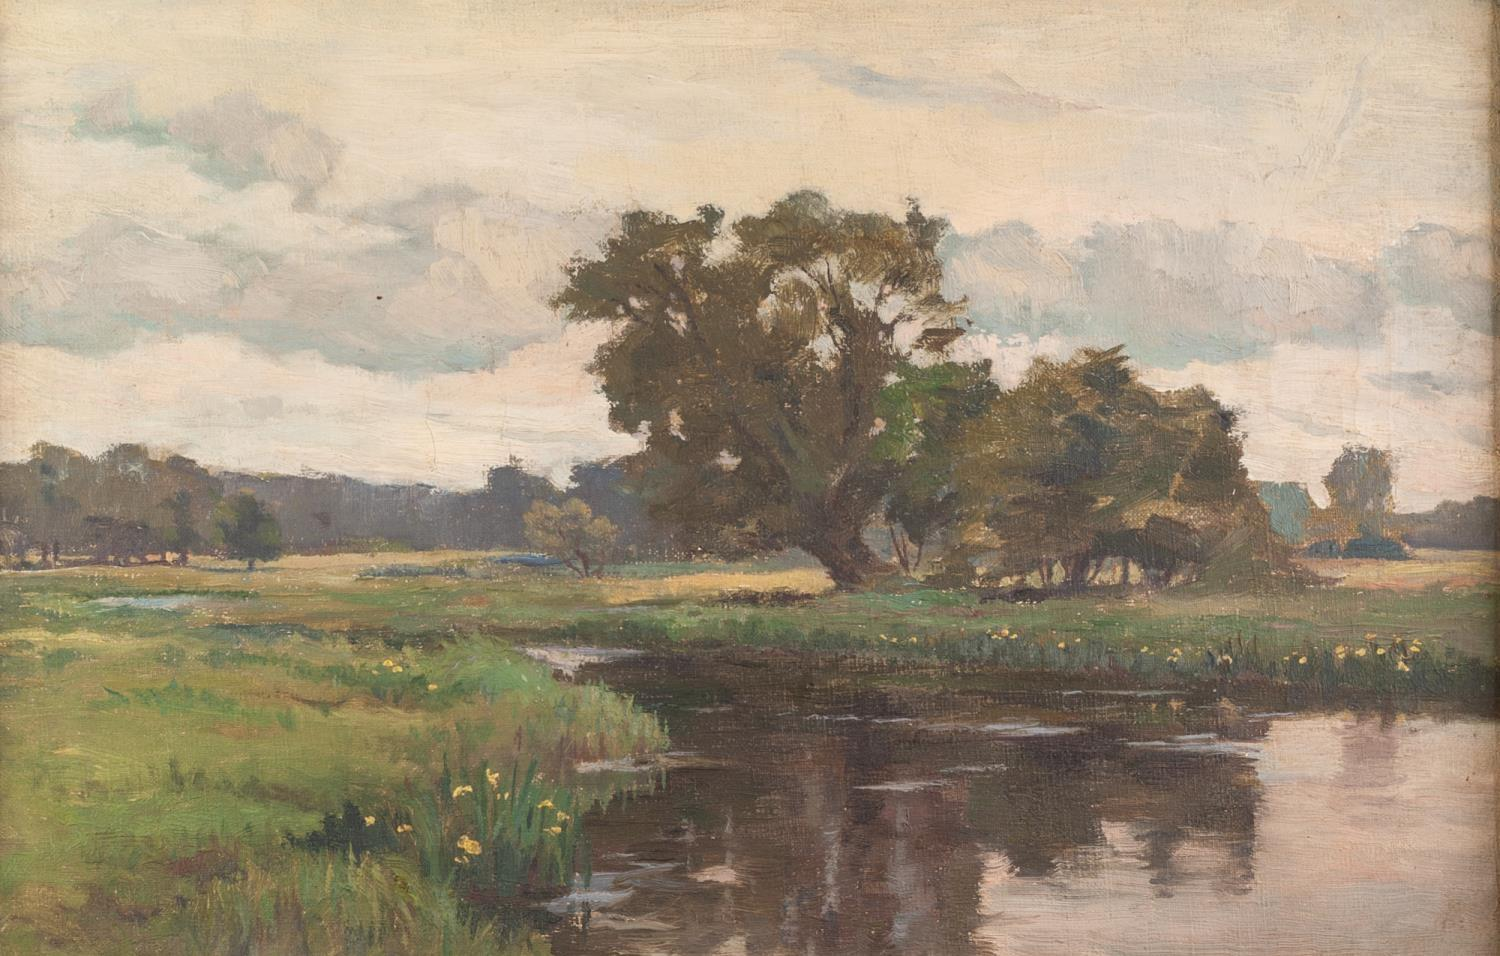 Lot 256 - ATTRIBUTED TO LIONEL BIRCH (1858-1930) OIL PAINTING ON CANVAS ?Ottery St. Mary, Devon? Unsigned,